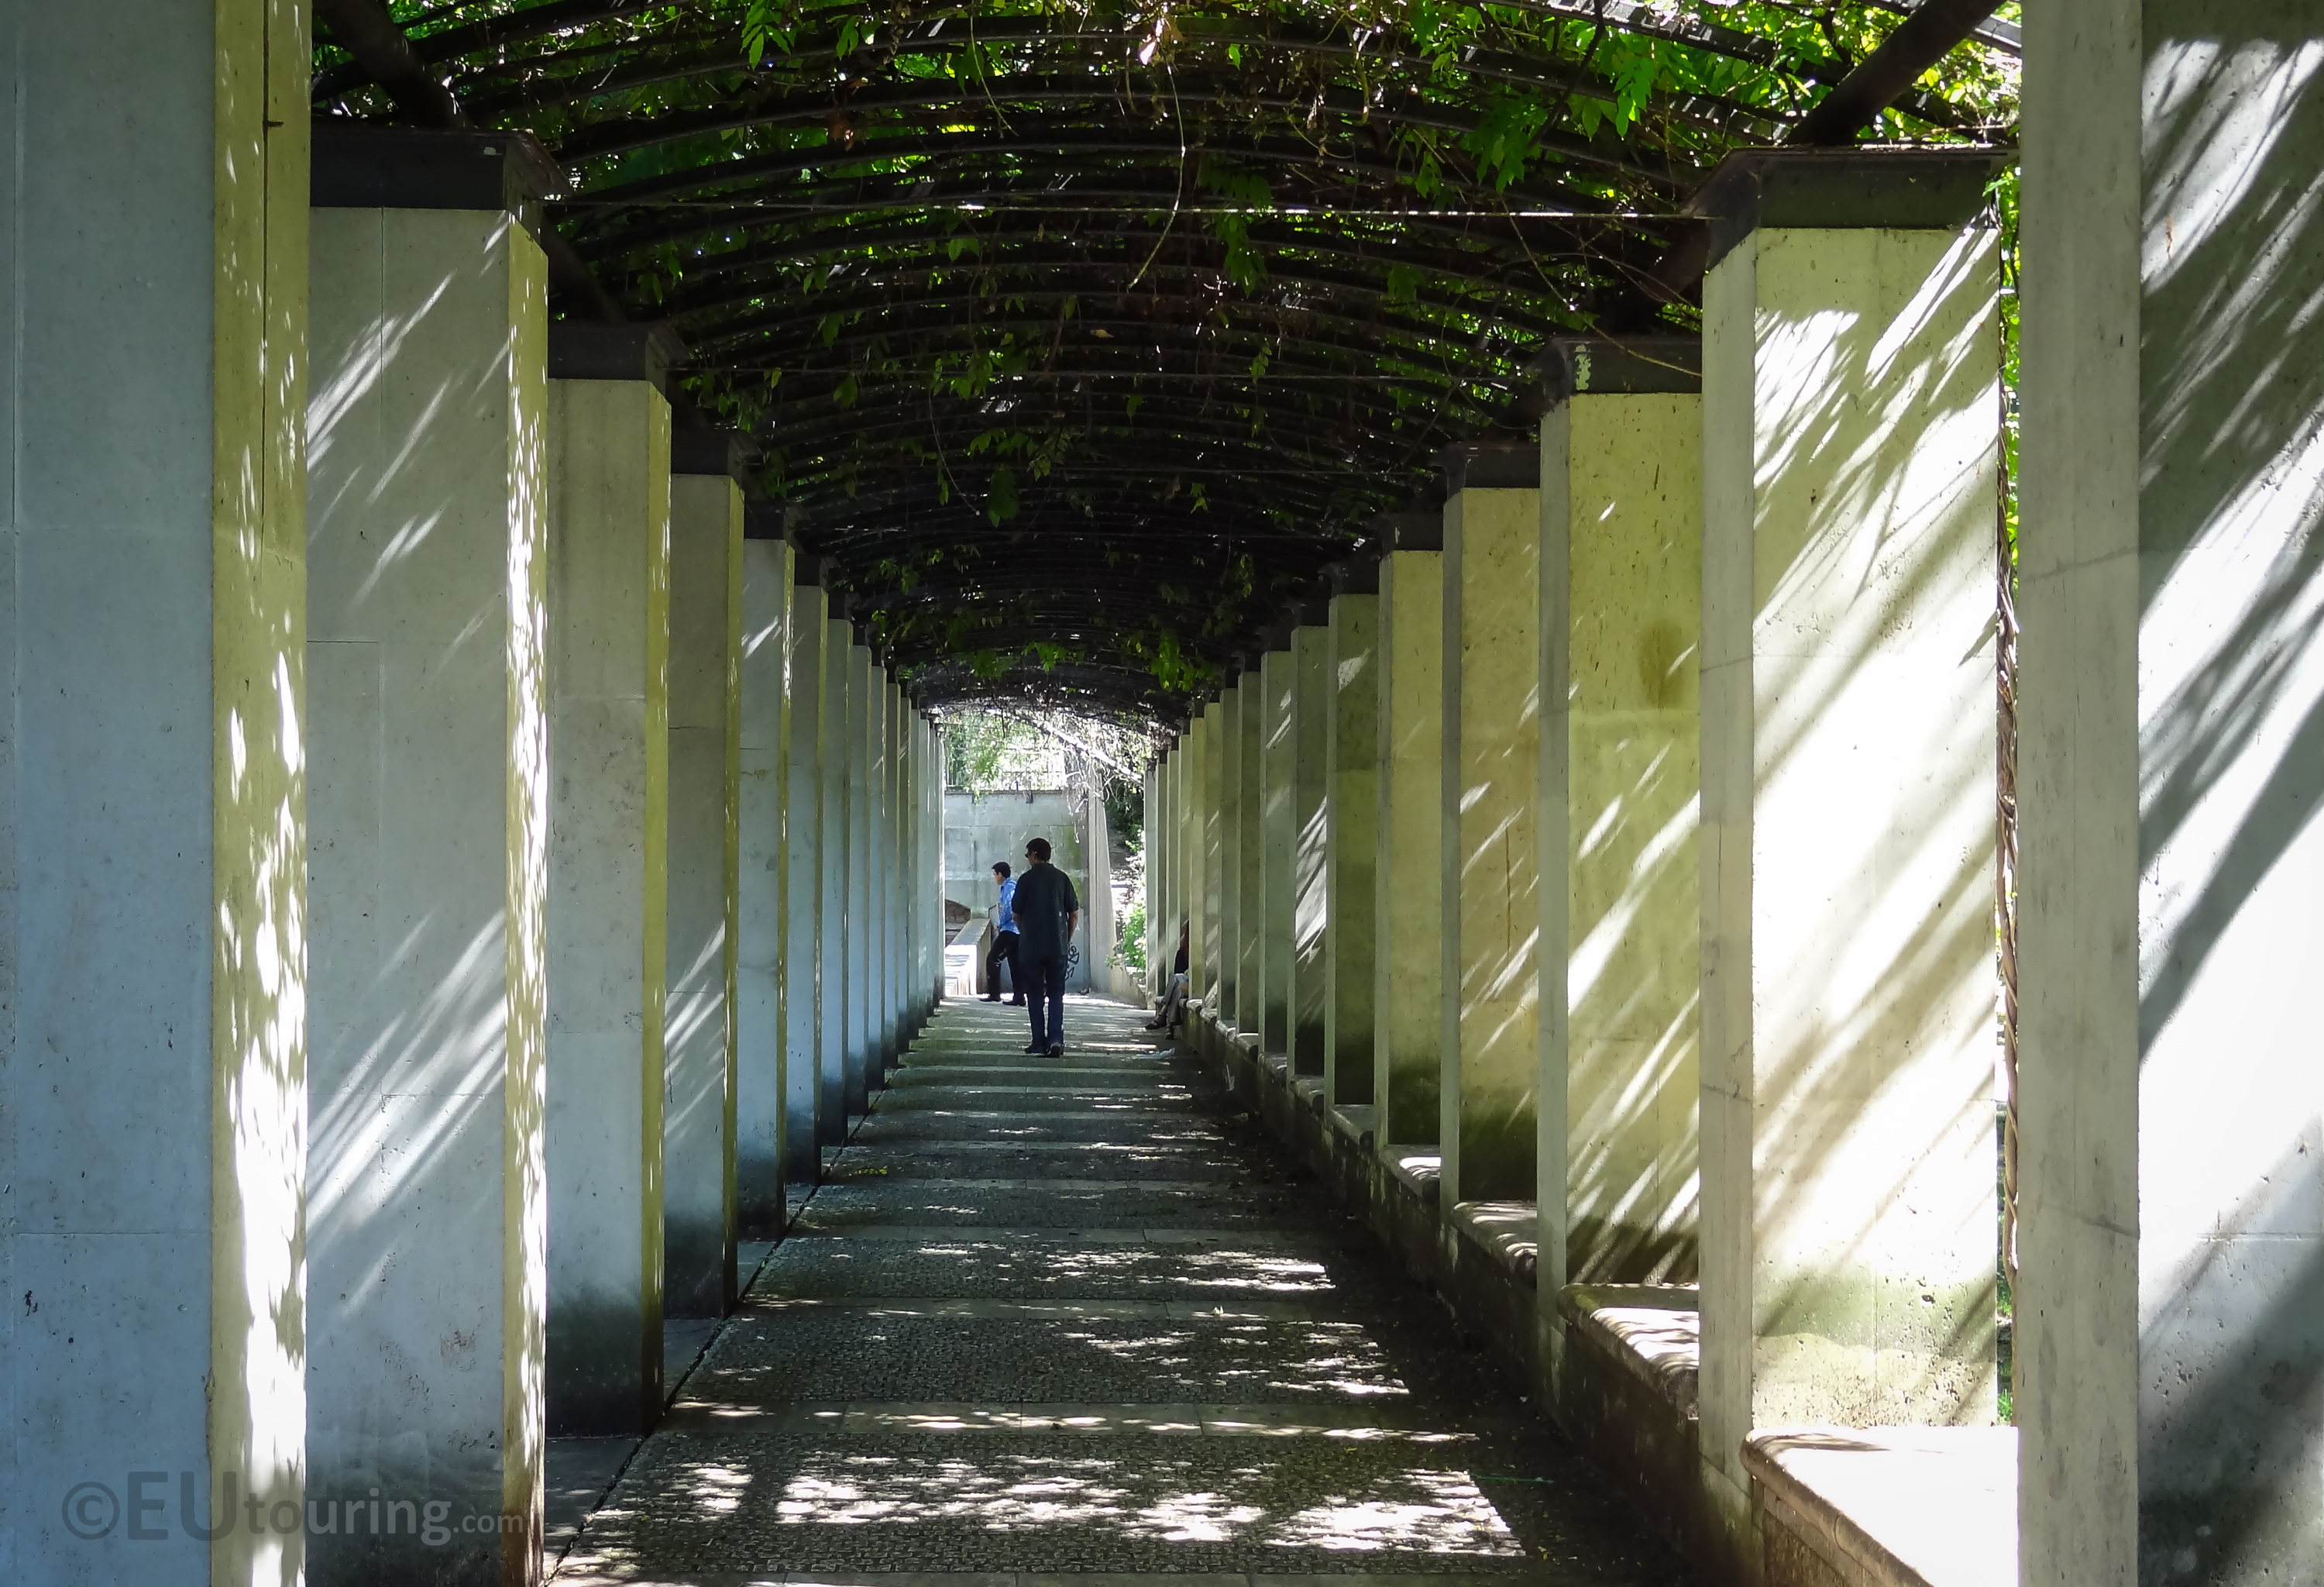 Covered walkway within Jardin Yitzhak Rabin